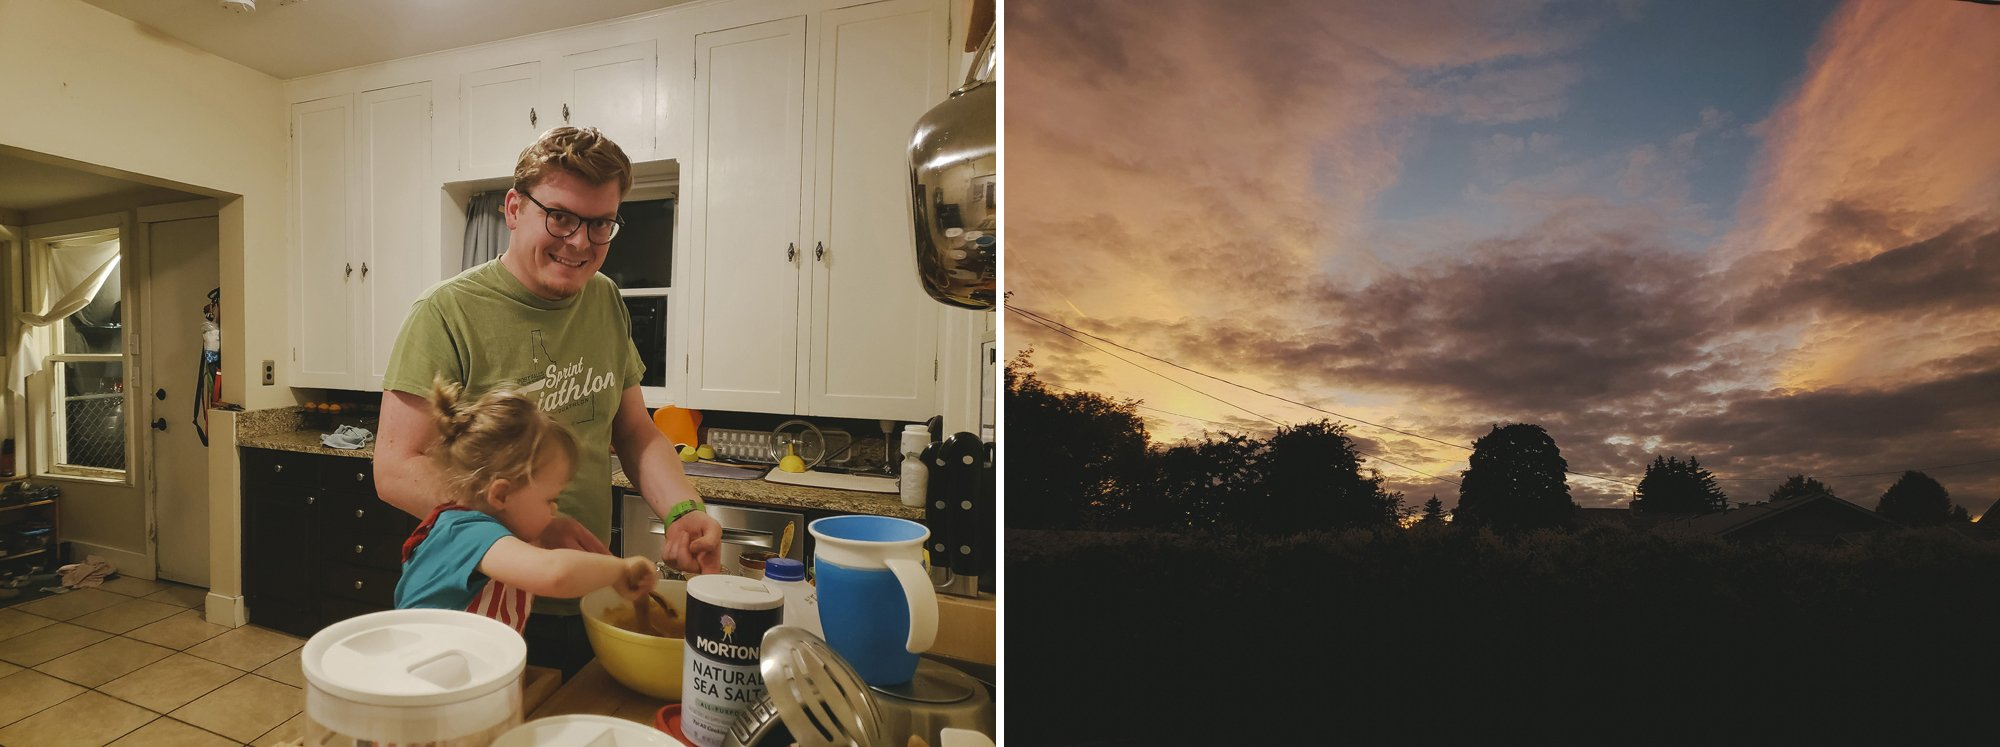 Cooking with Toddlers, Fall Sunsets